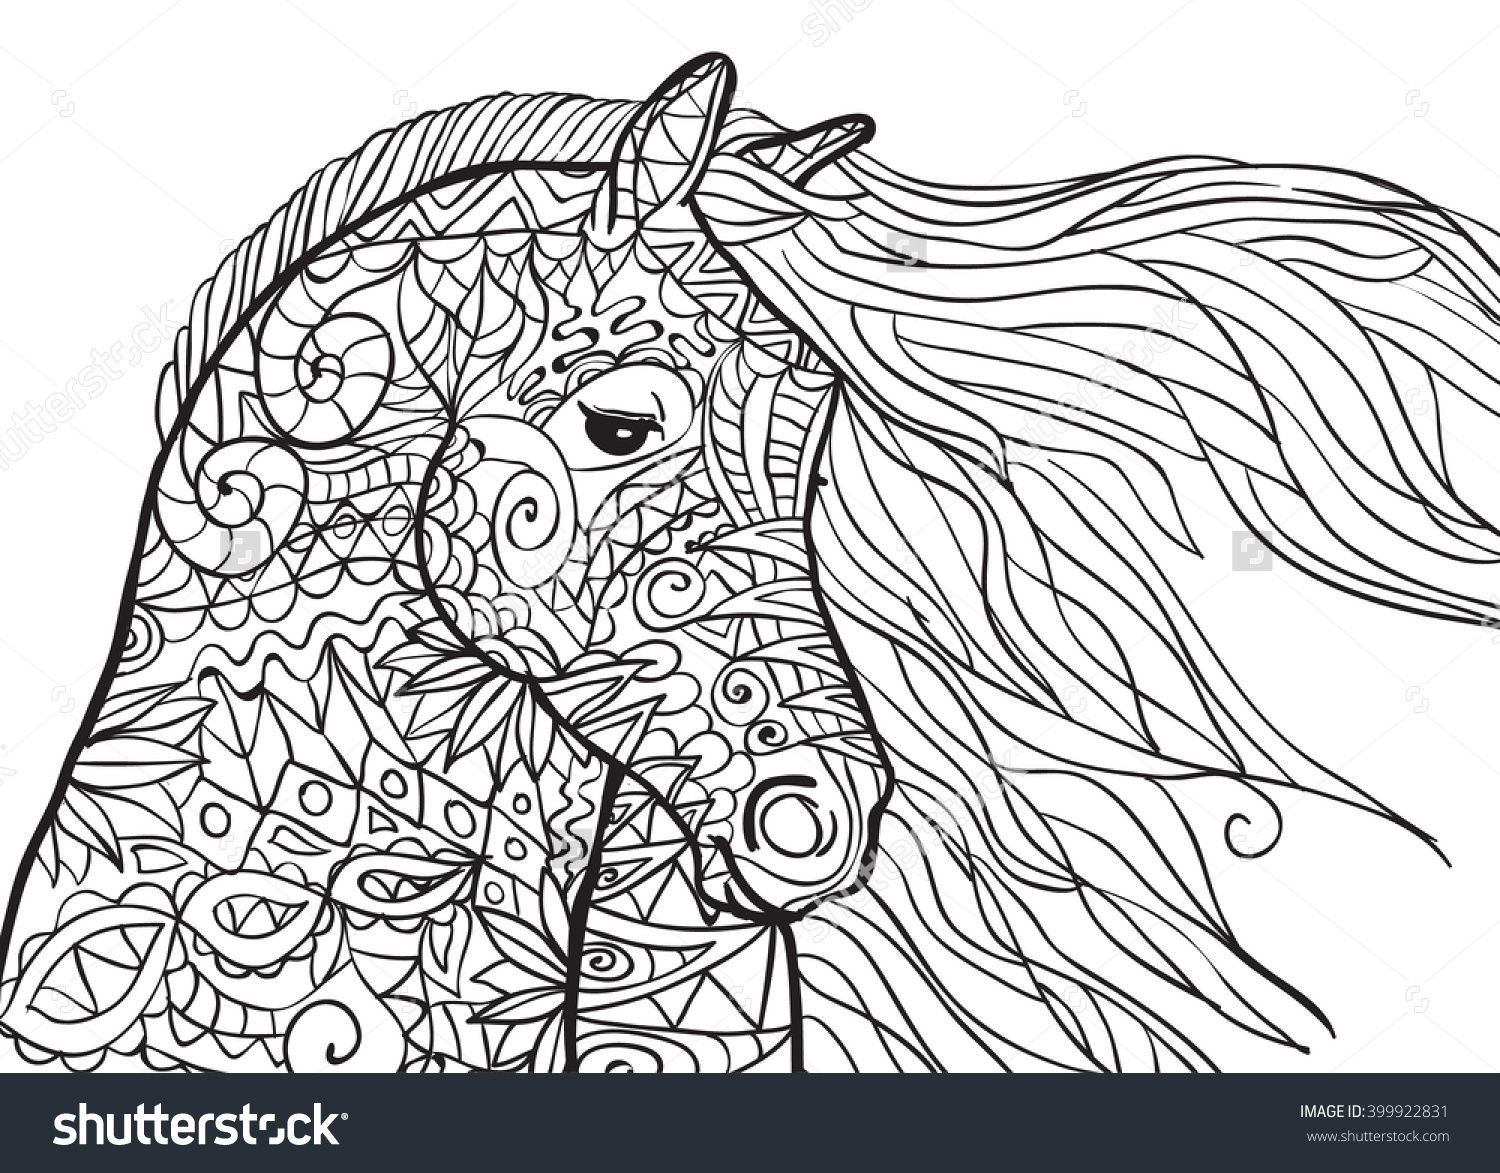 Best ideas about Horses Coloring Pages For Adults . Save or Pin Hand Drawn Coloring Pages With Horse s Head Illustration Now.